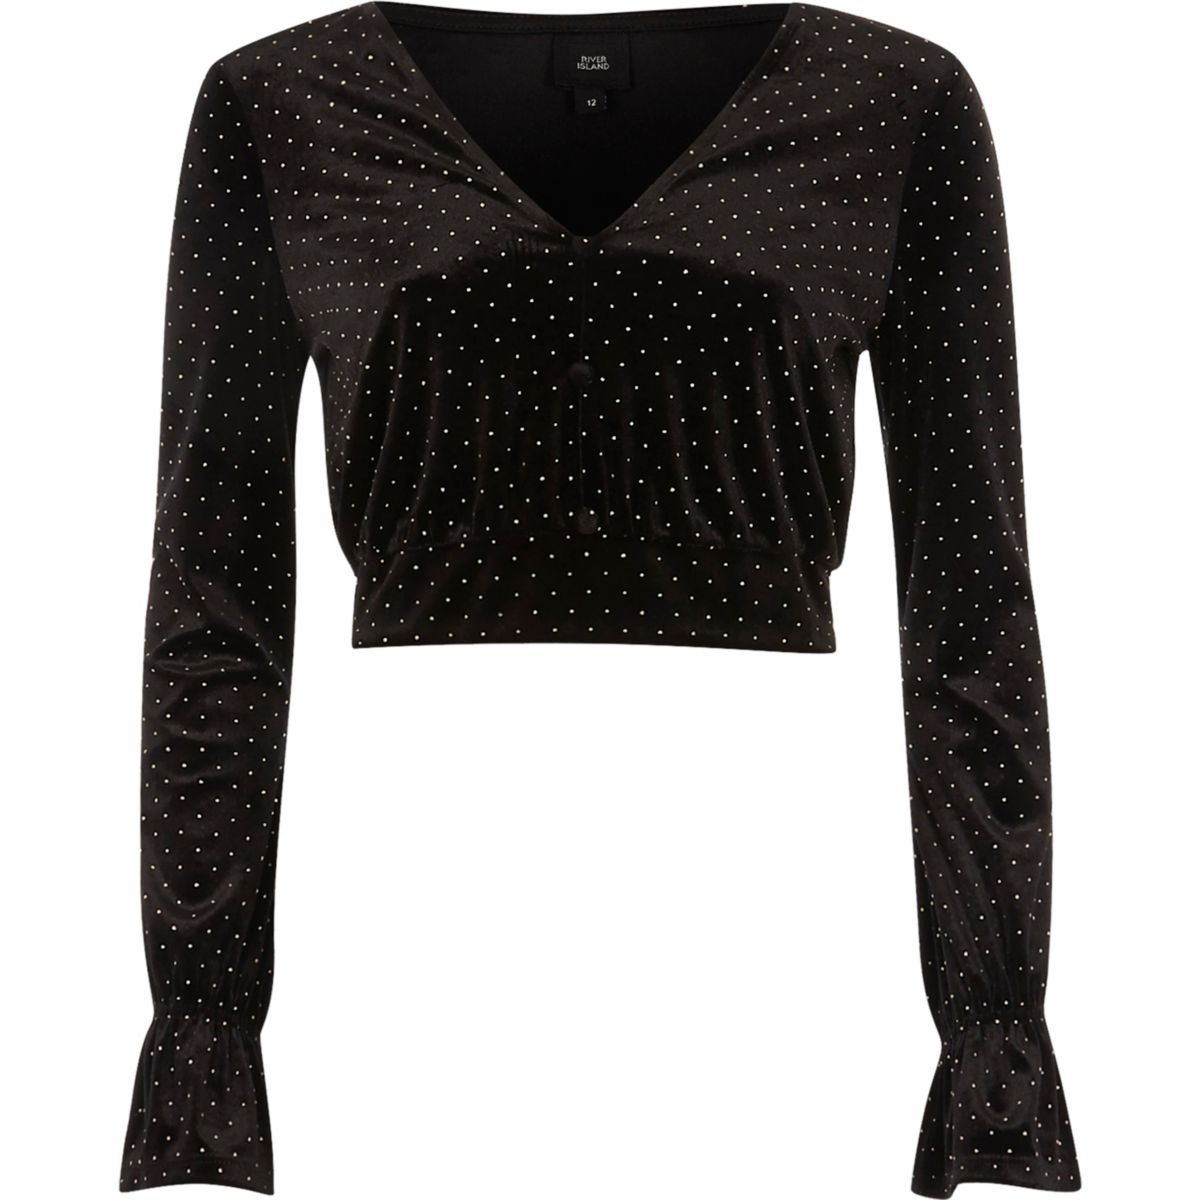 Black studded velvet long sleeve crop top